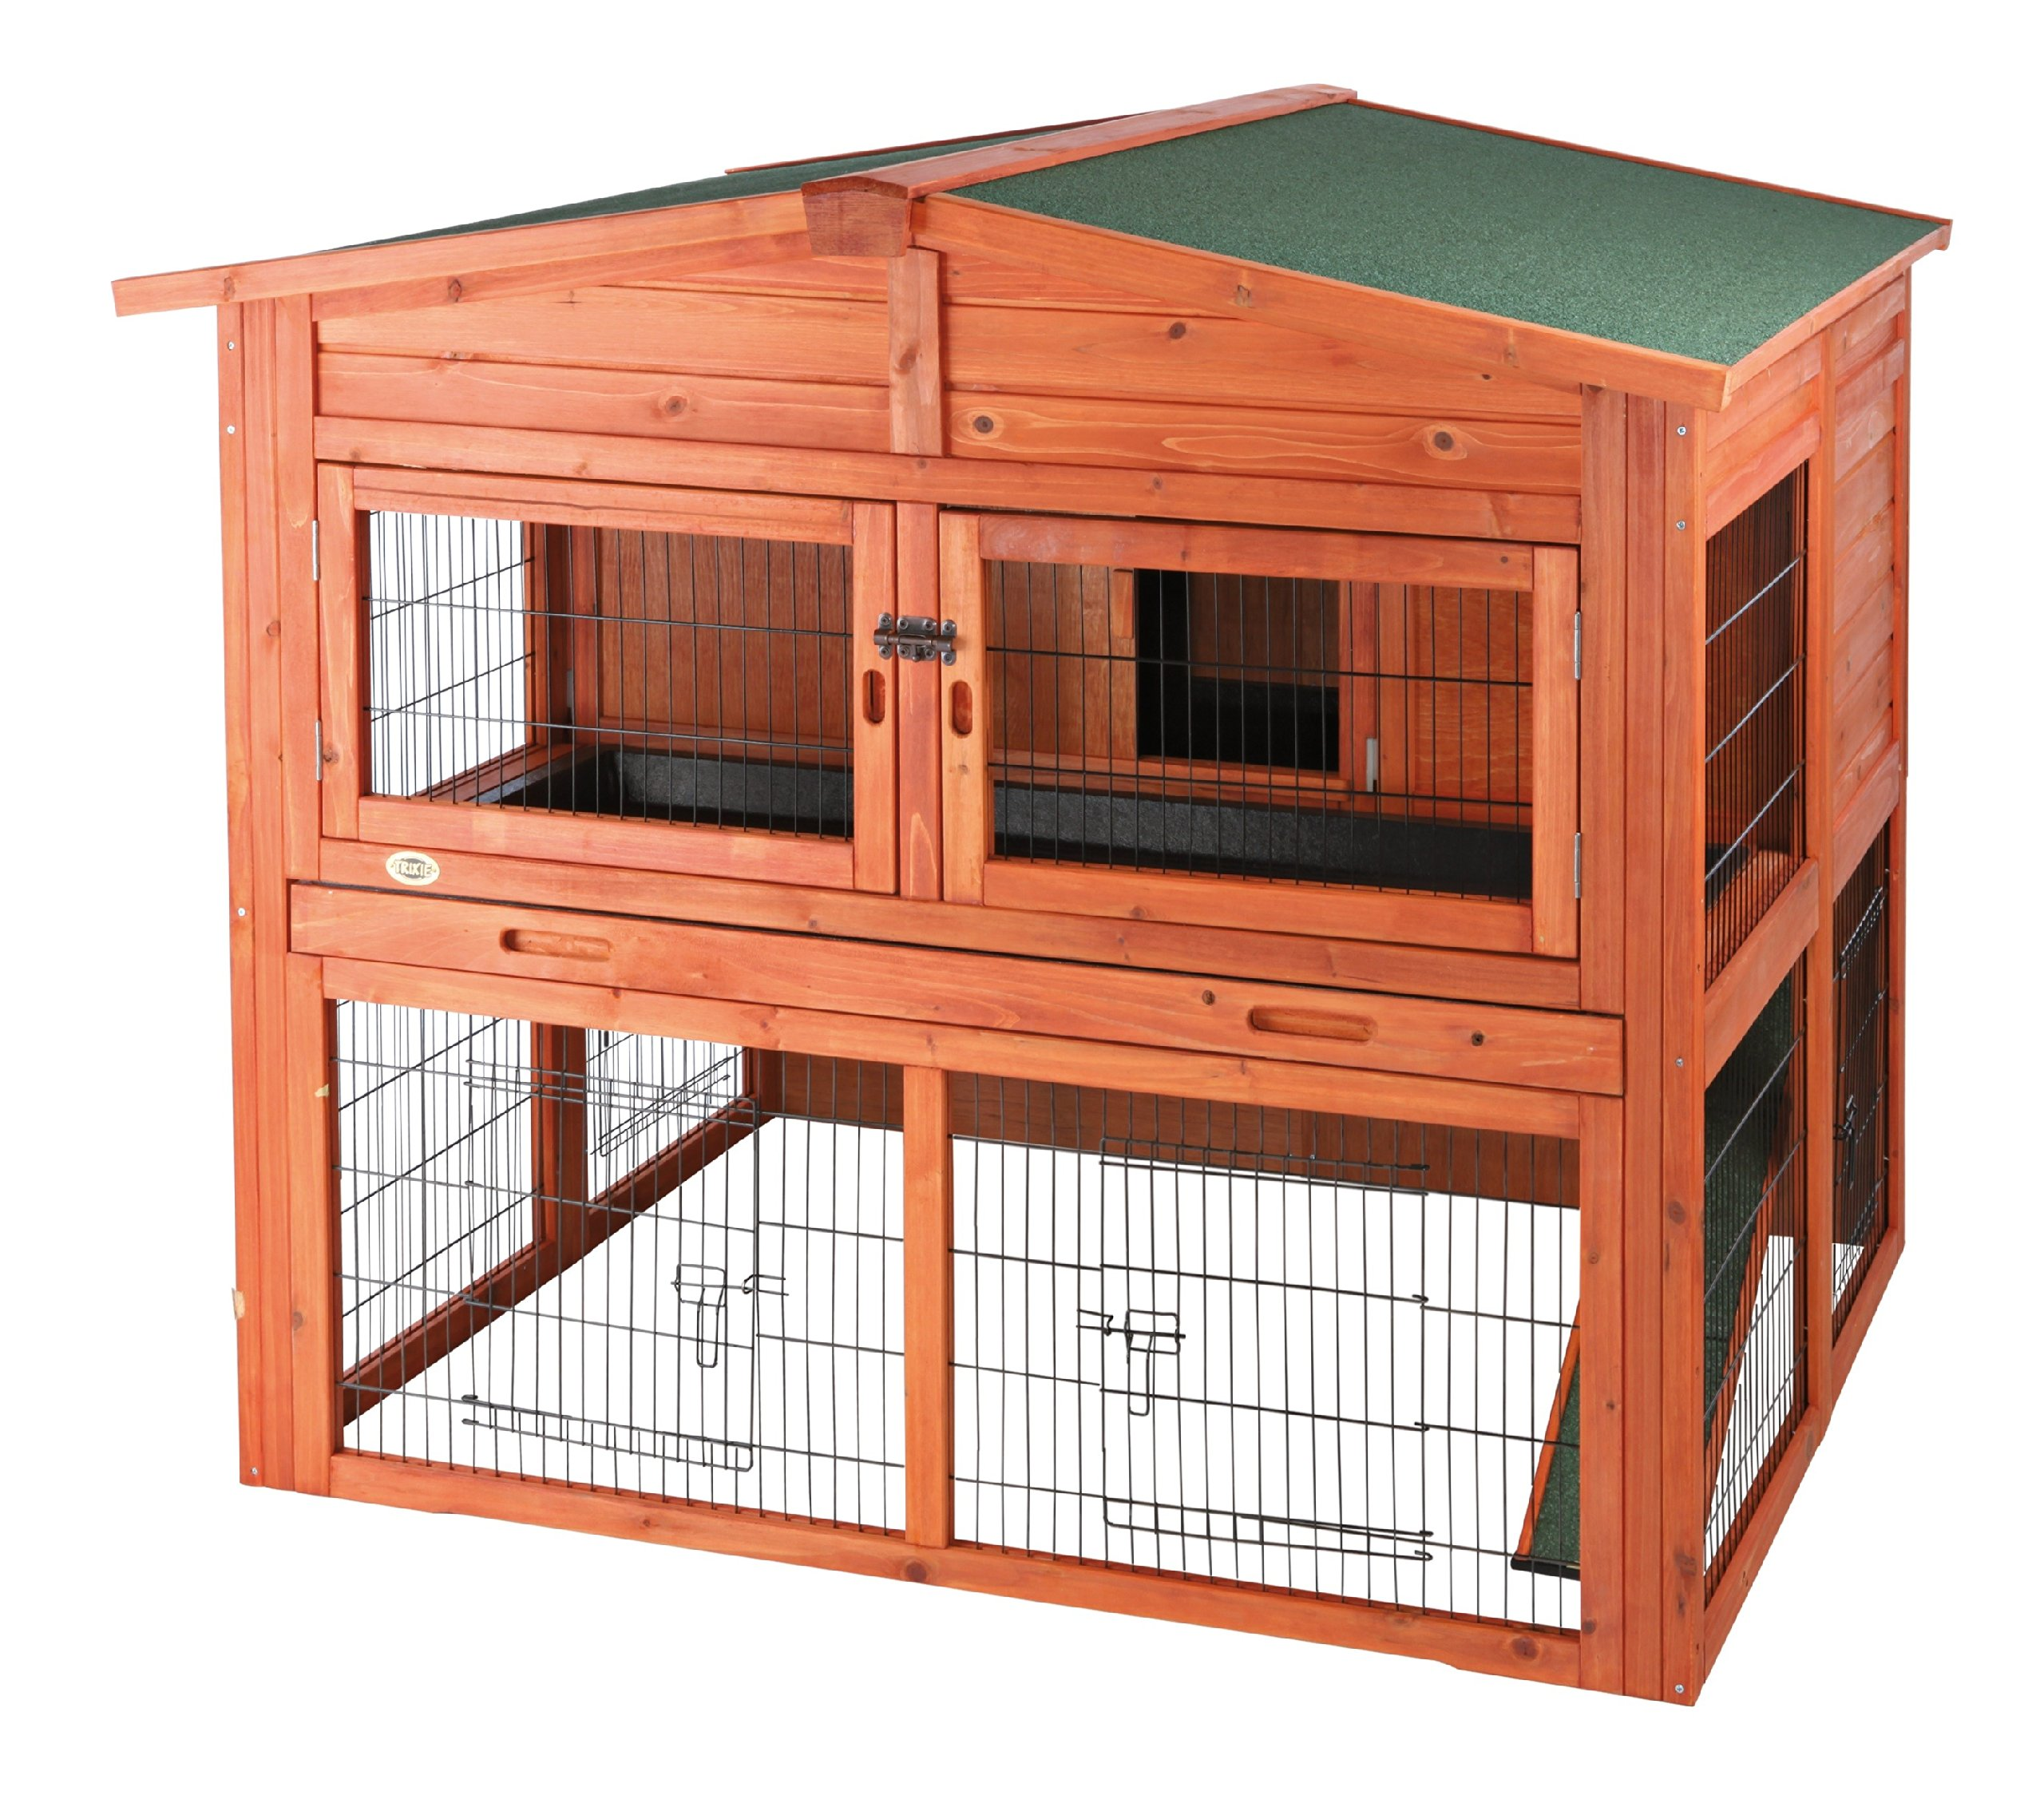 TRIXIE Pet Products Rabbit Hutch with Attic (XL), 53 x 44 x 45.25 inches by Trixie